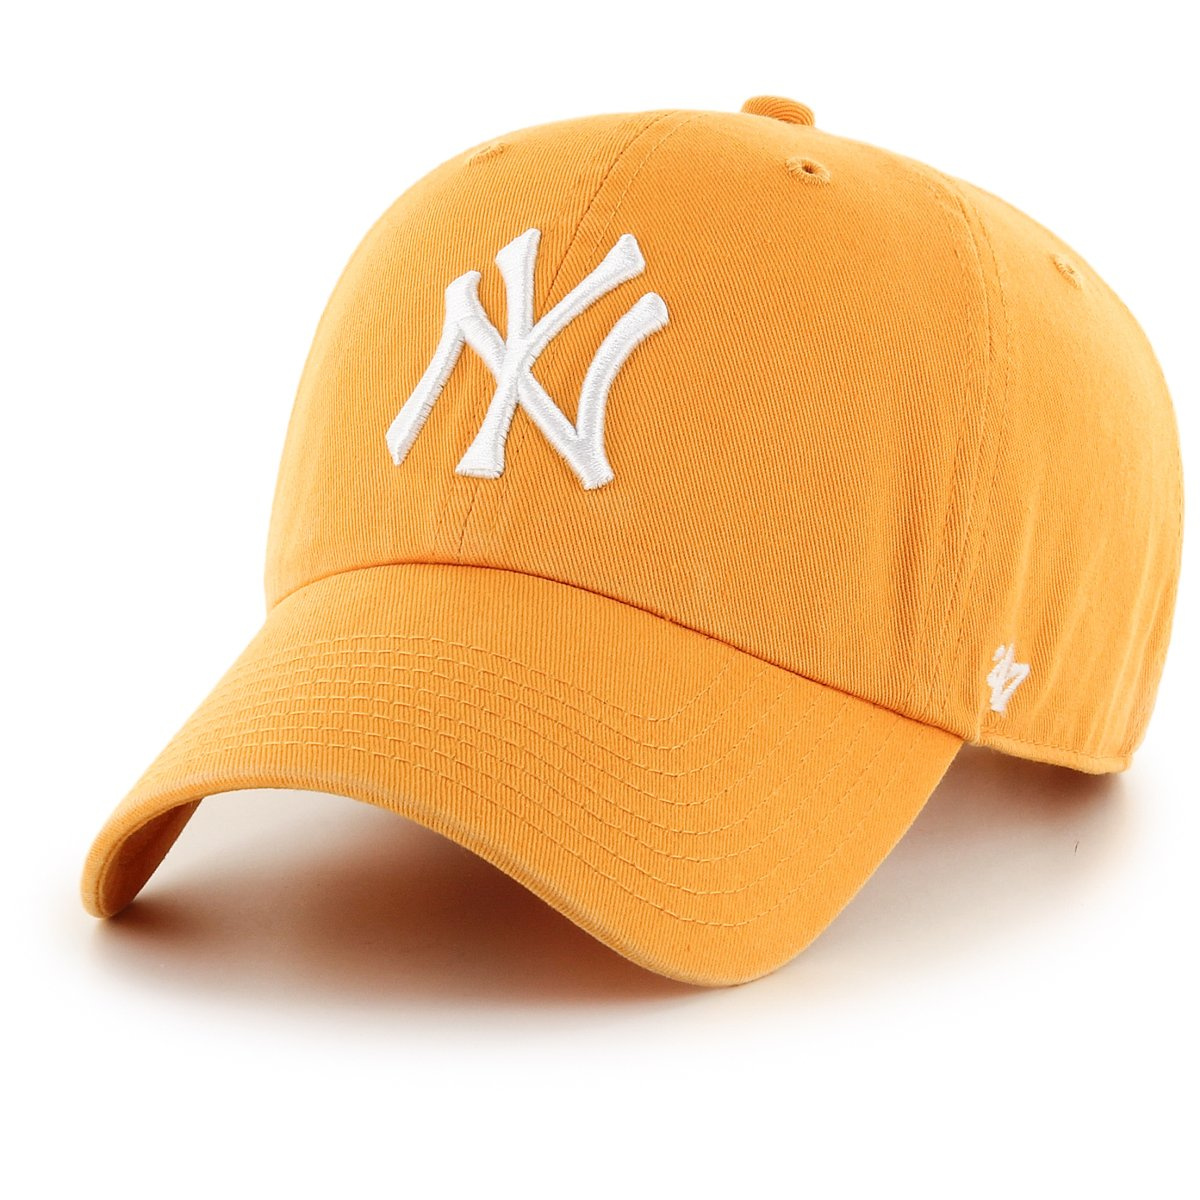 Details about 47 Brand Adjustable Cap - CLEAN UP New York Yankees gold 42f85cec5